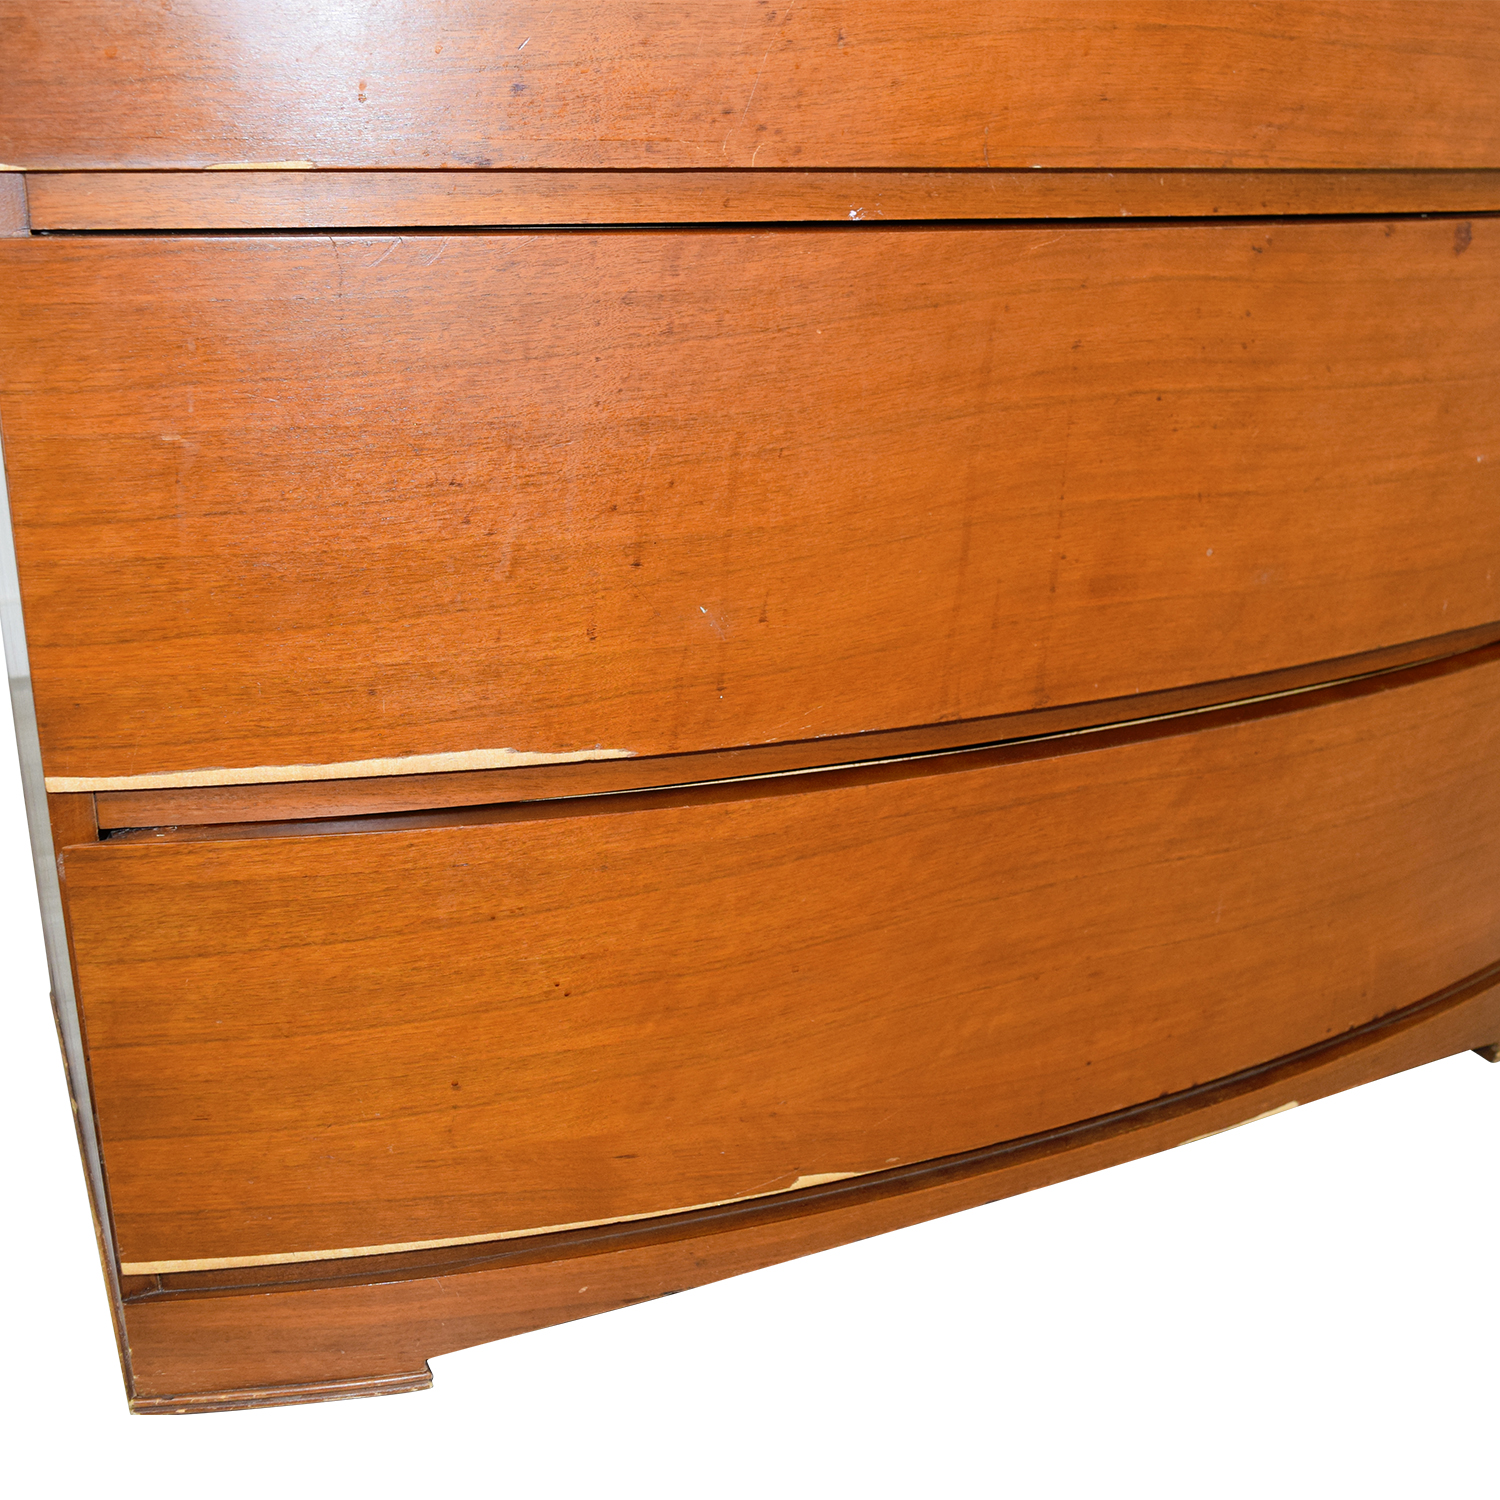 buy Vintage Three-Drawer Dresser online